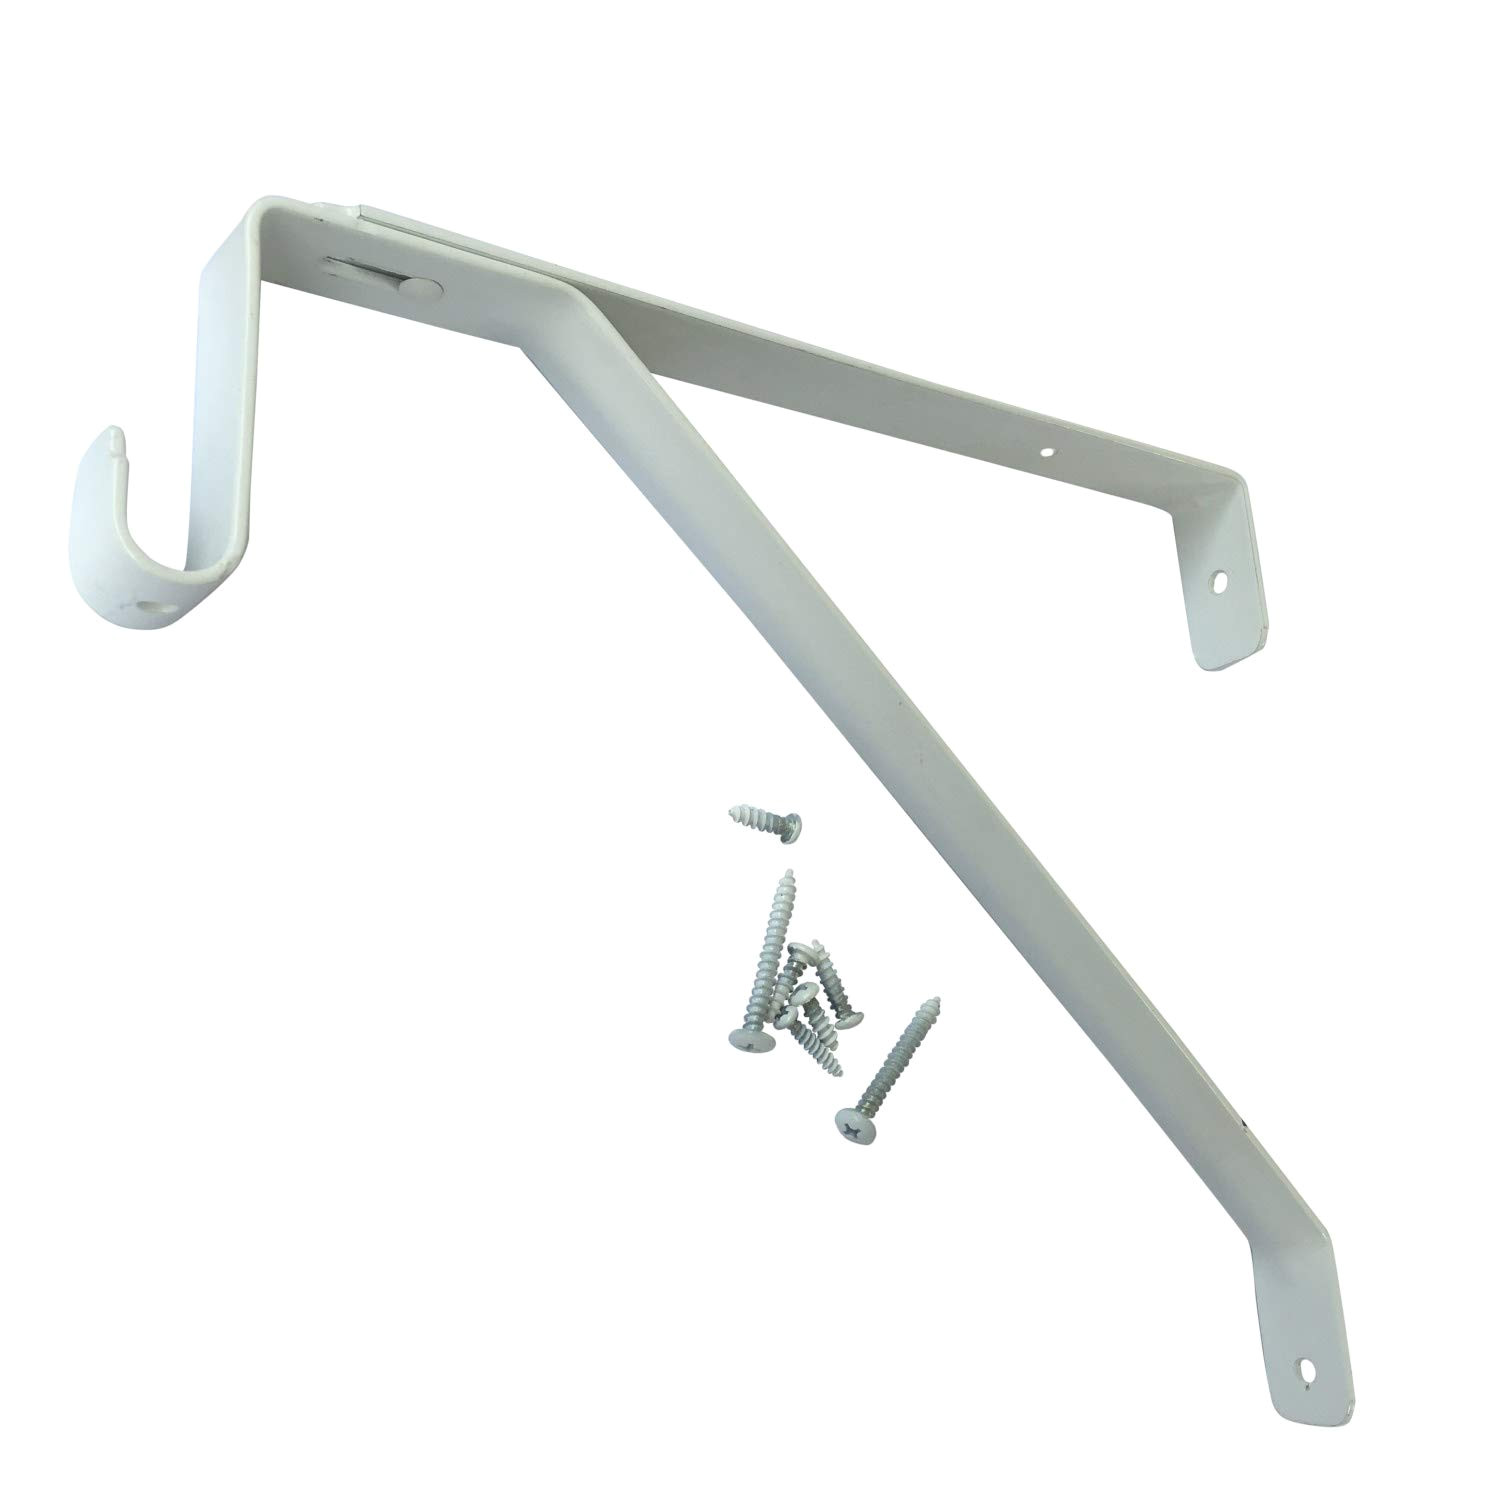 desunia oval closet rod shelf bracket adjustable for rear cleat strip white 1